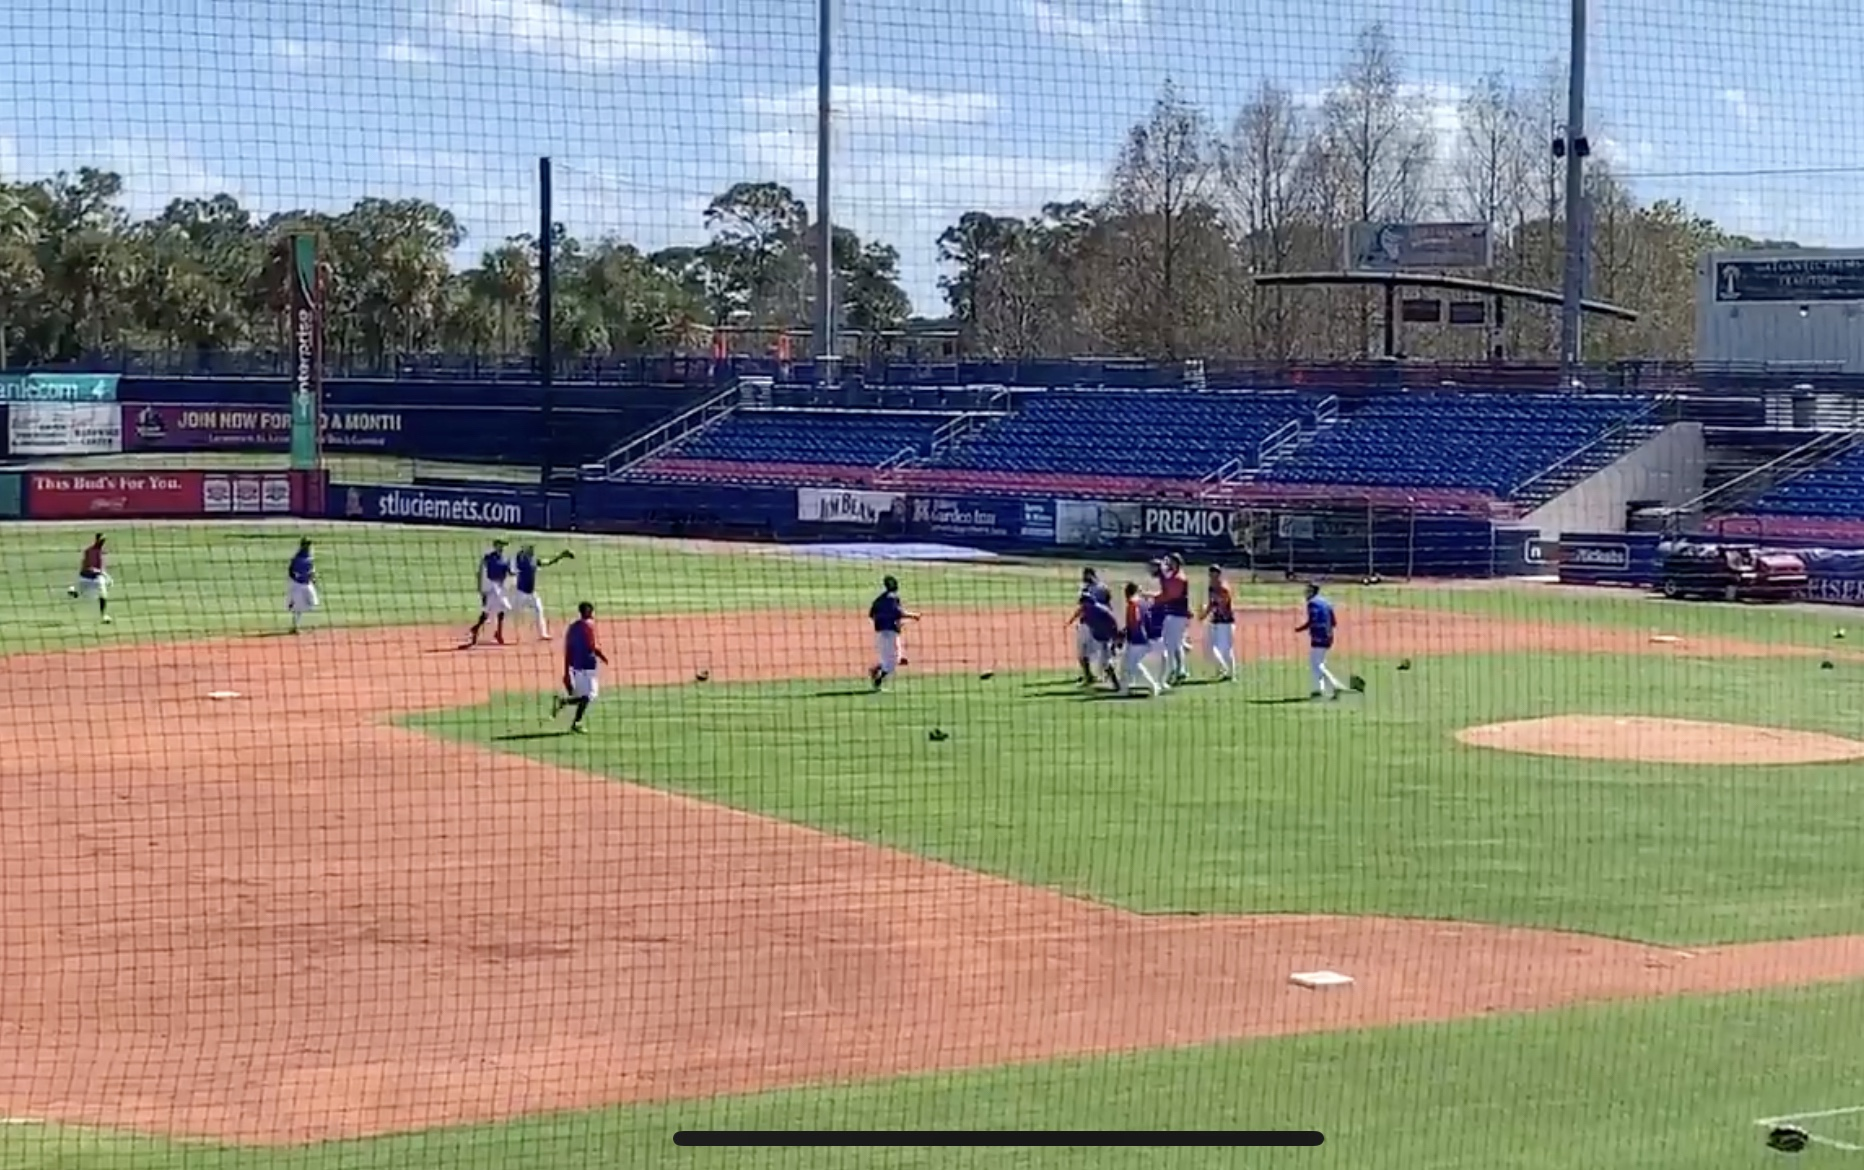 Mets Practice Celebrating Winning The World Series….Wait What?